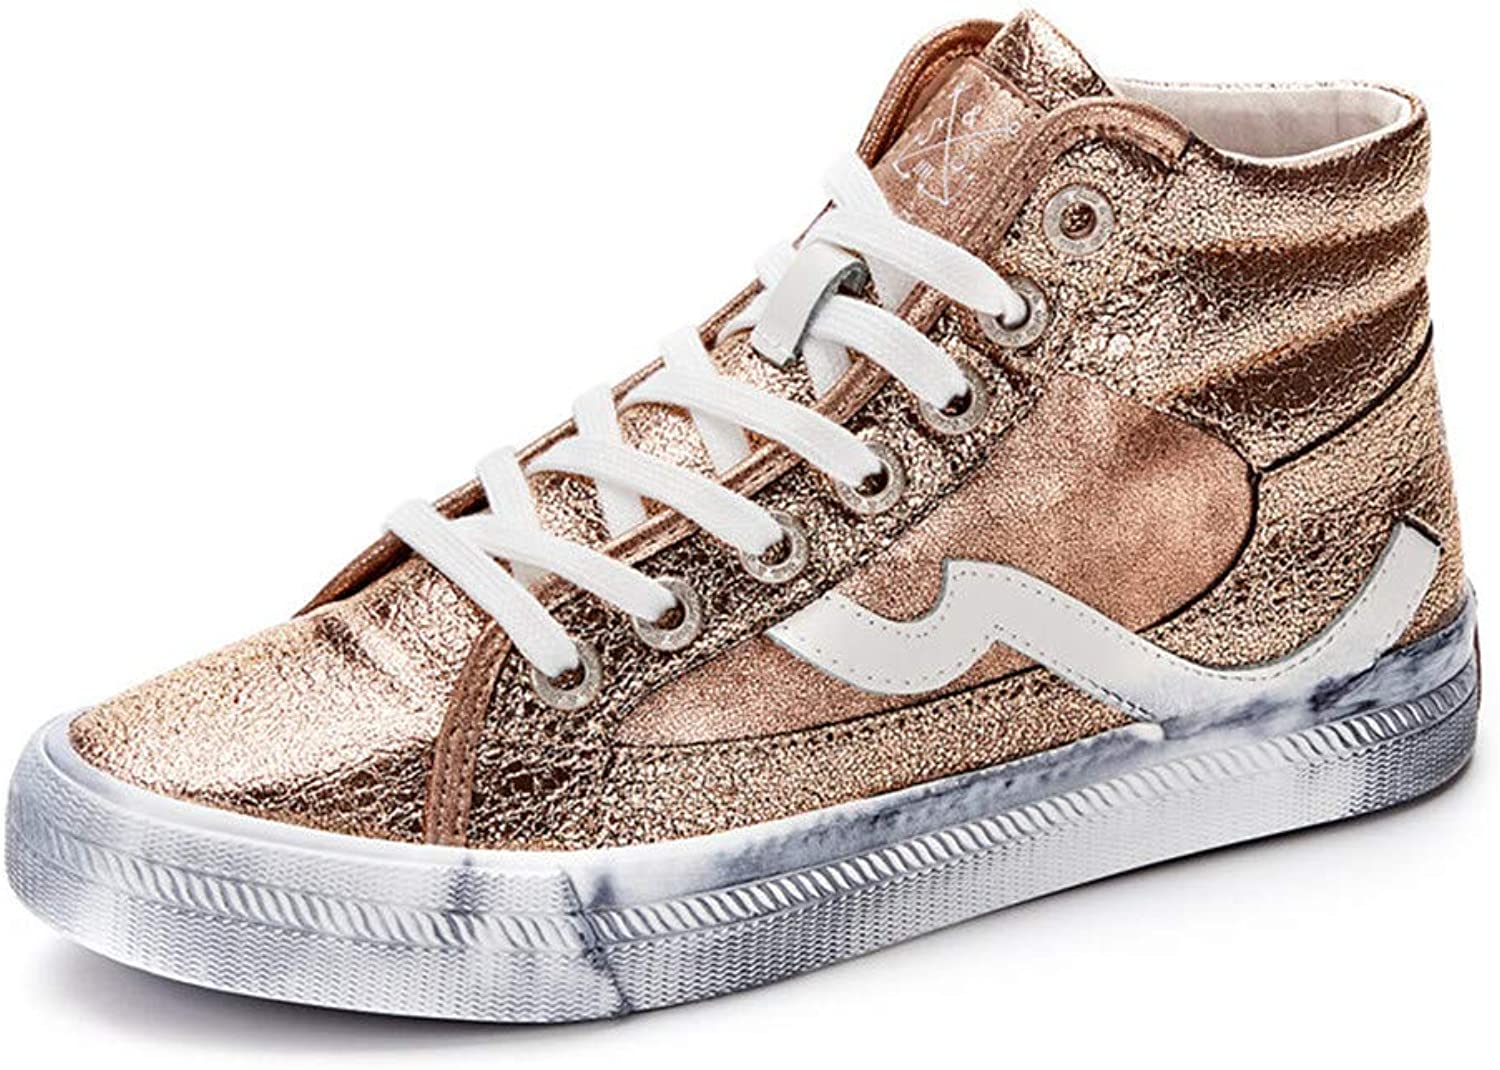 Newnessshop Fashion High Top Sneakers pink gold Canvas Casual shoes Women's Vulcanize shoes Lace Up Flats shoes